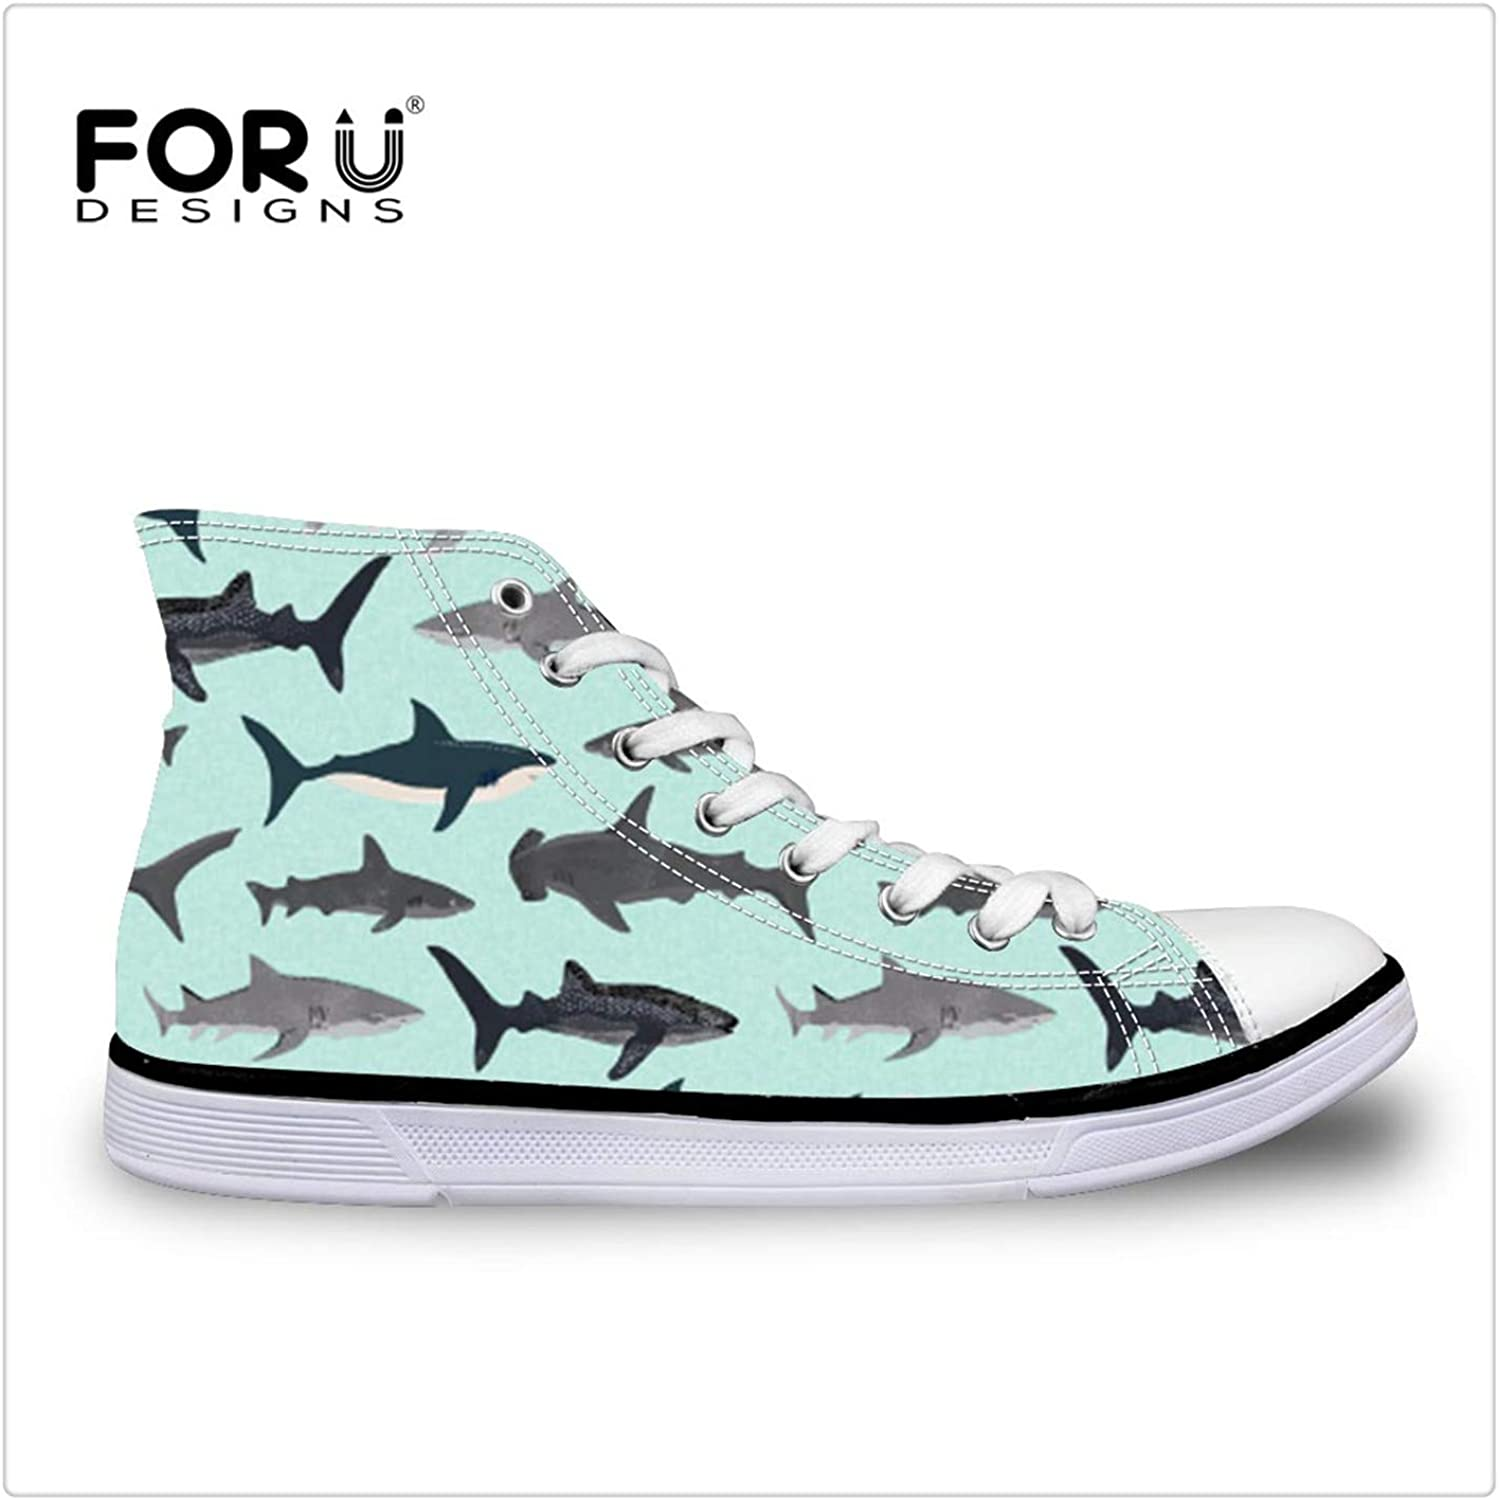 DOUSTY& 2018 Summer Women Vulcanized shoes Cute Shark Printed Canvas shoes High Top Students Walking Lace-Up Casual shoes ZJZ216AK 11